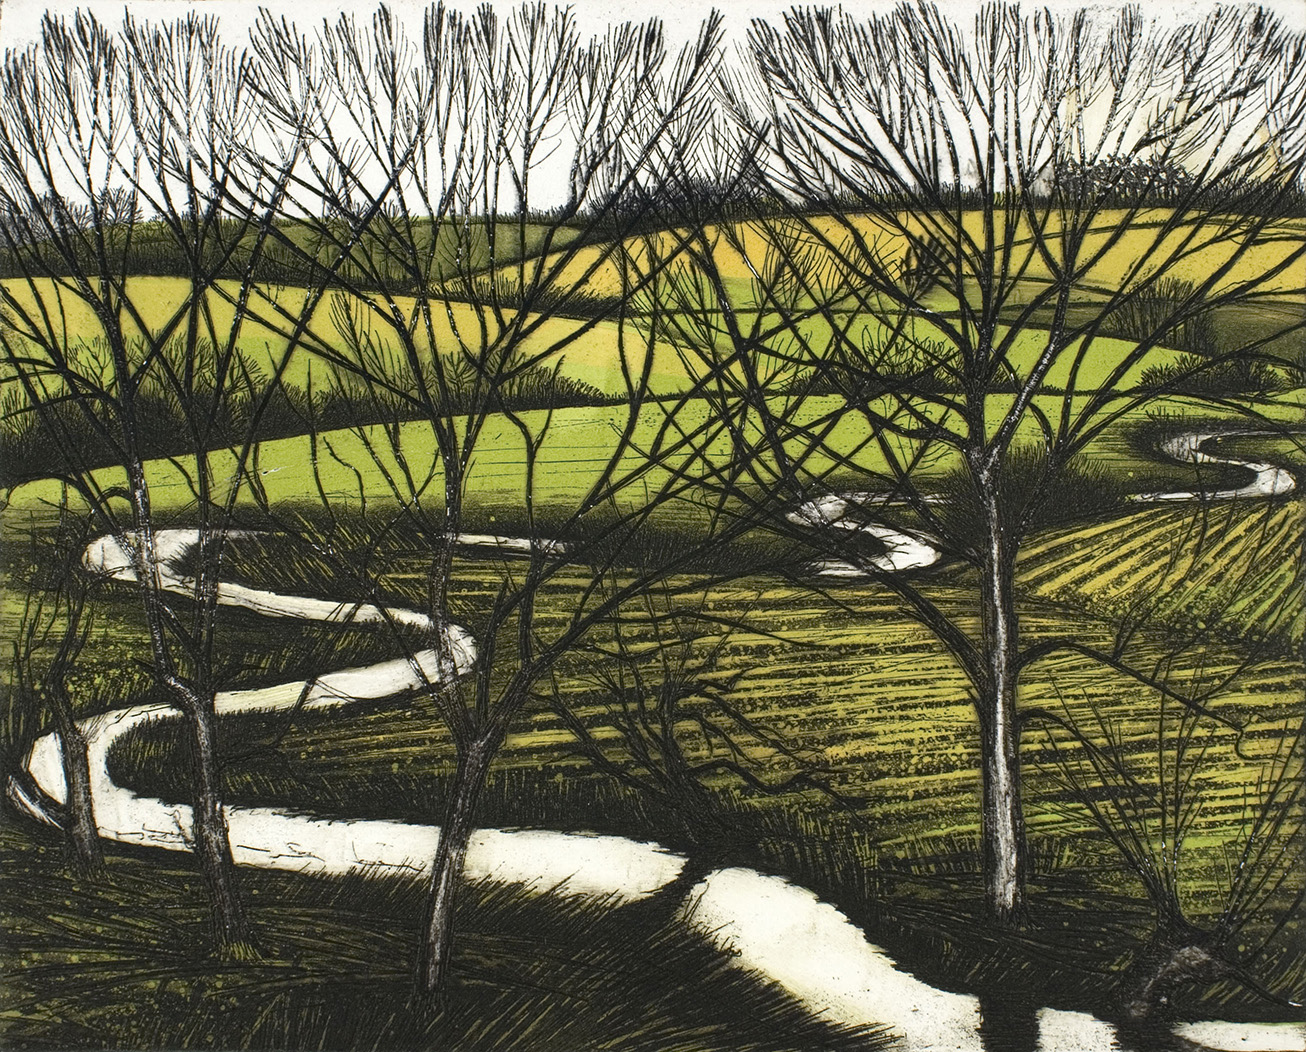 'Through the Trees' by Morna Rhys